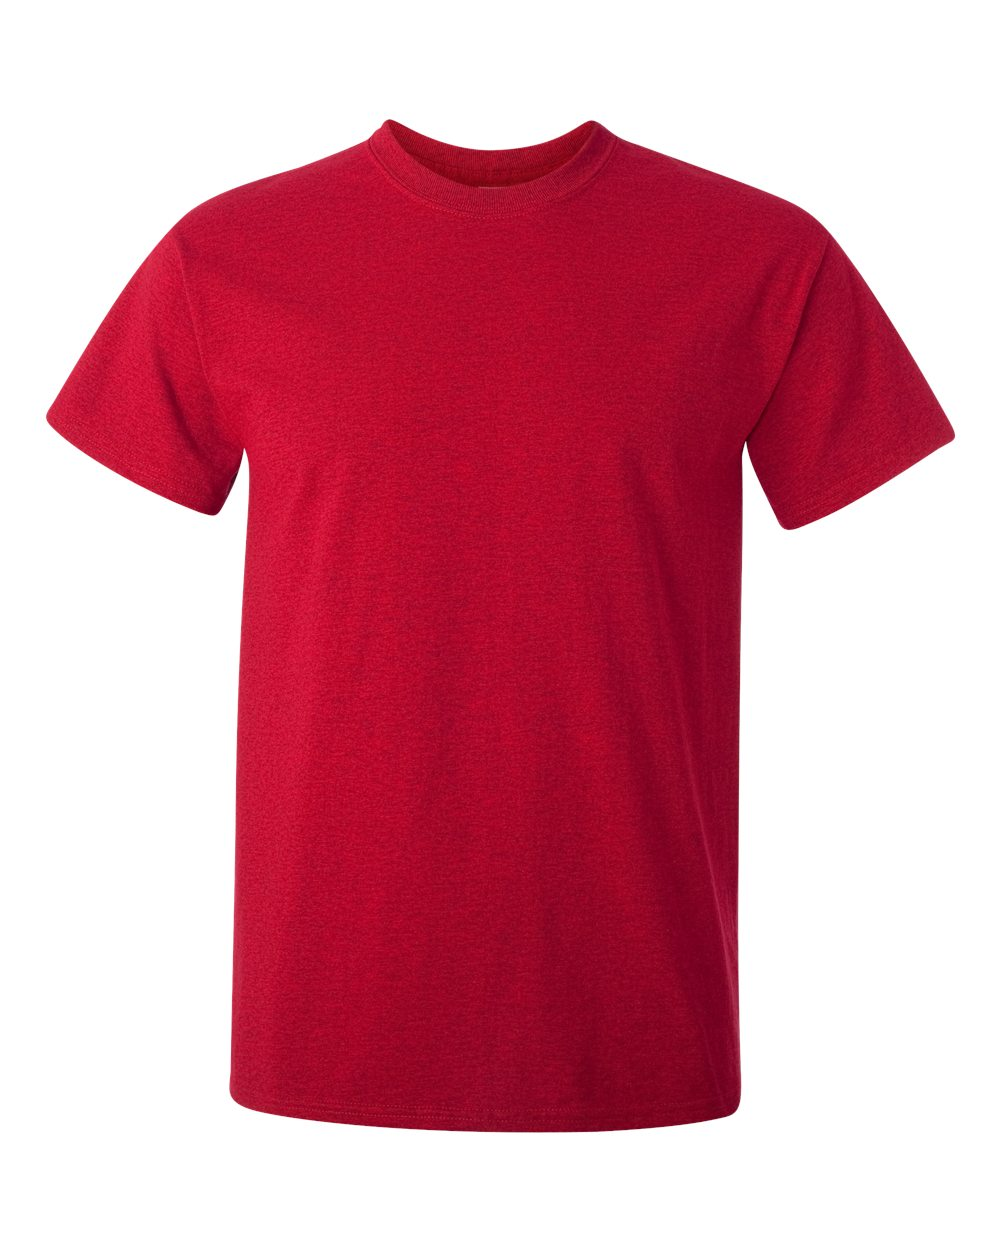 Co color cardinal red - Gildan 2000 Standard Unisex Tee